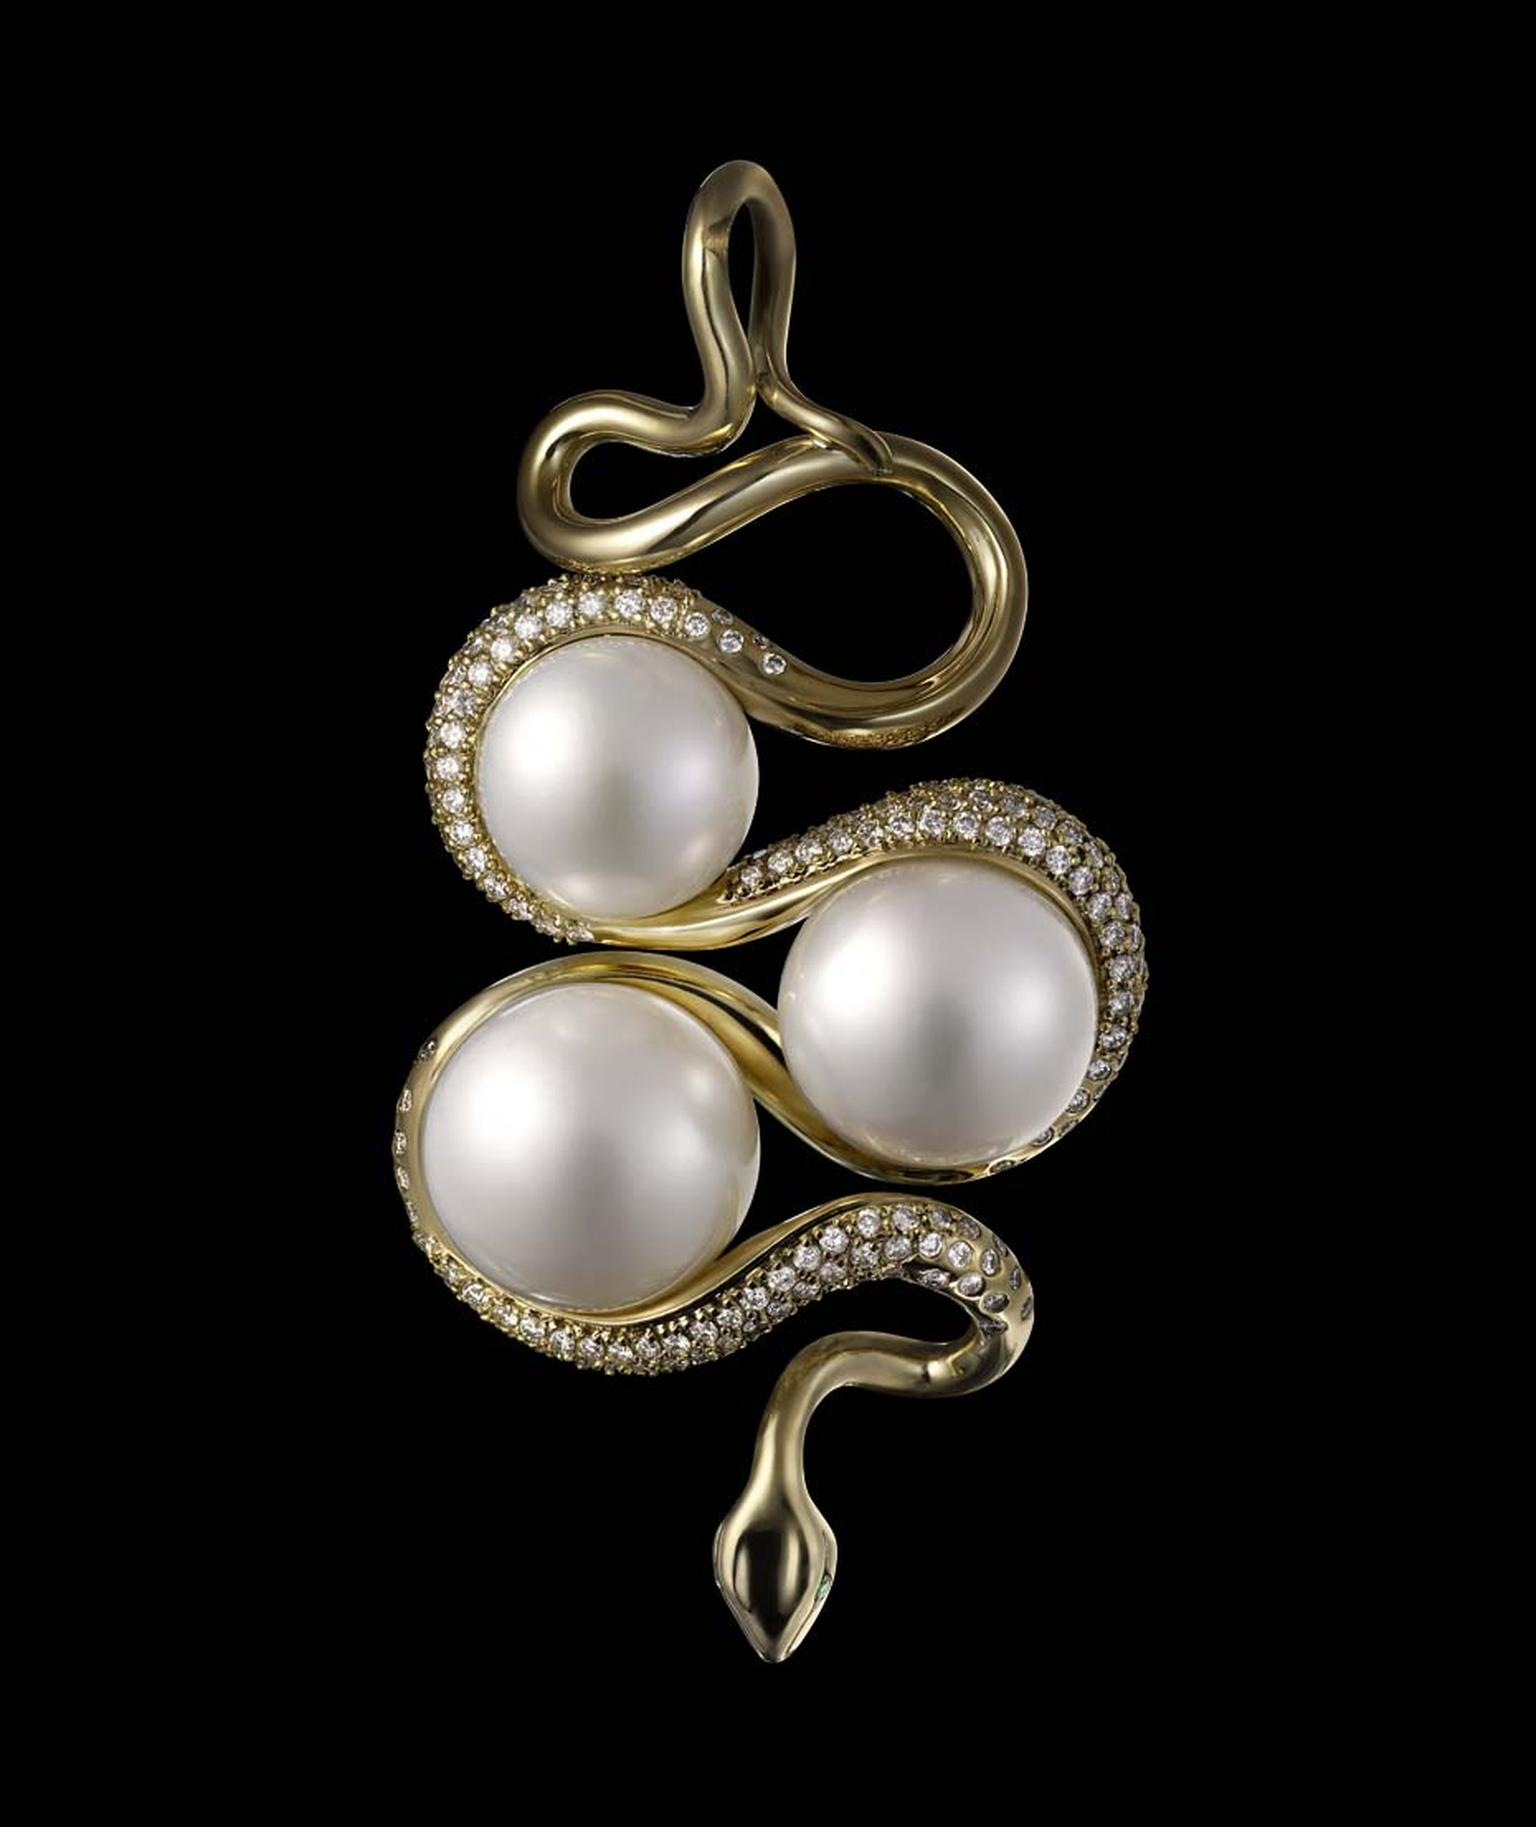 Dashi Namdakov Golden Snake pendant with diamonds, pearls and emeralds.